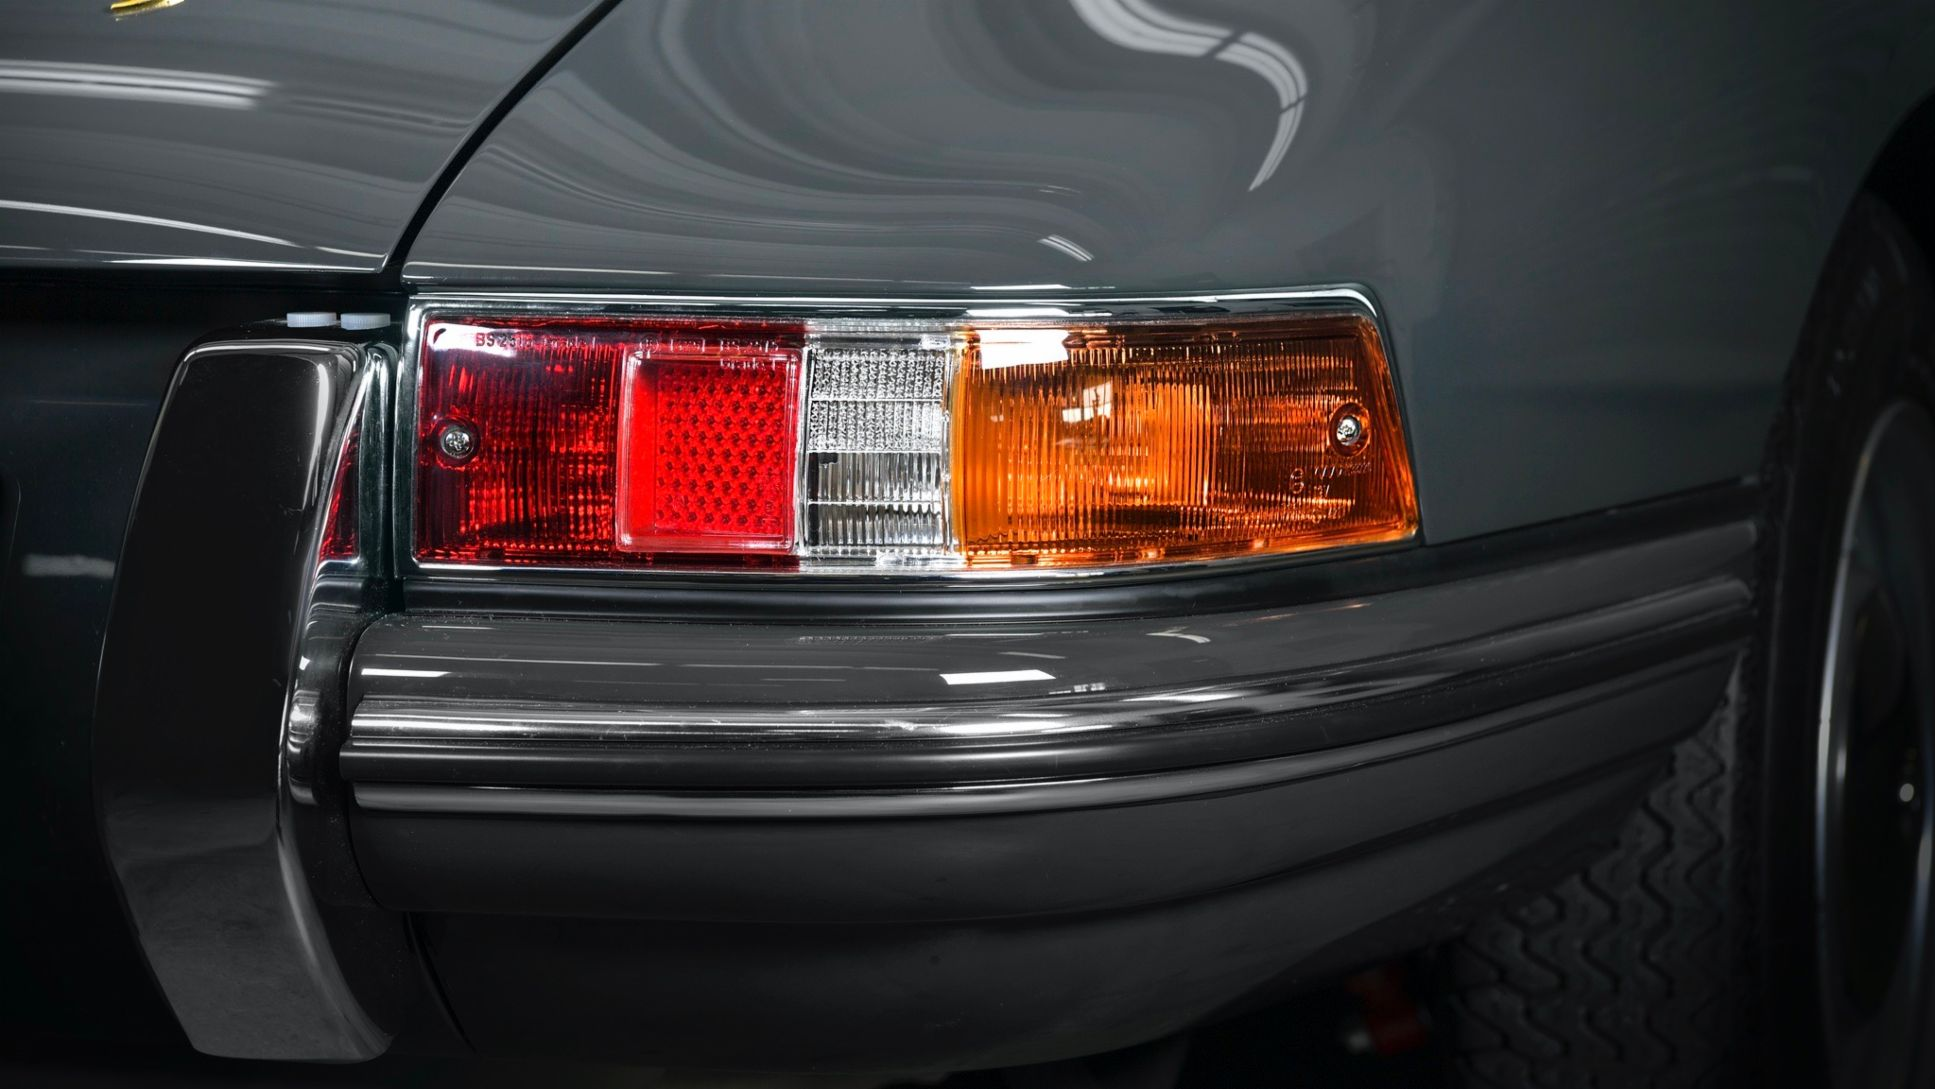 Tail lights for the 911, 2020, Porsche AG